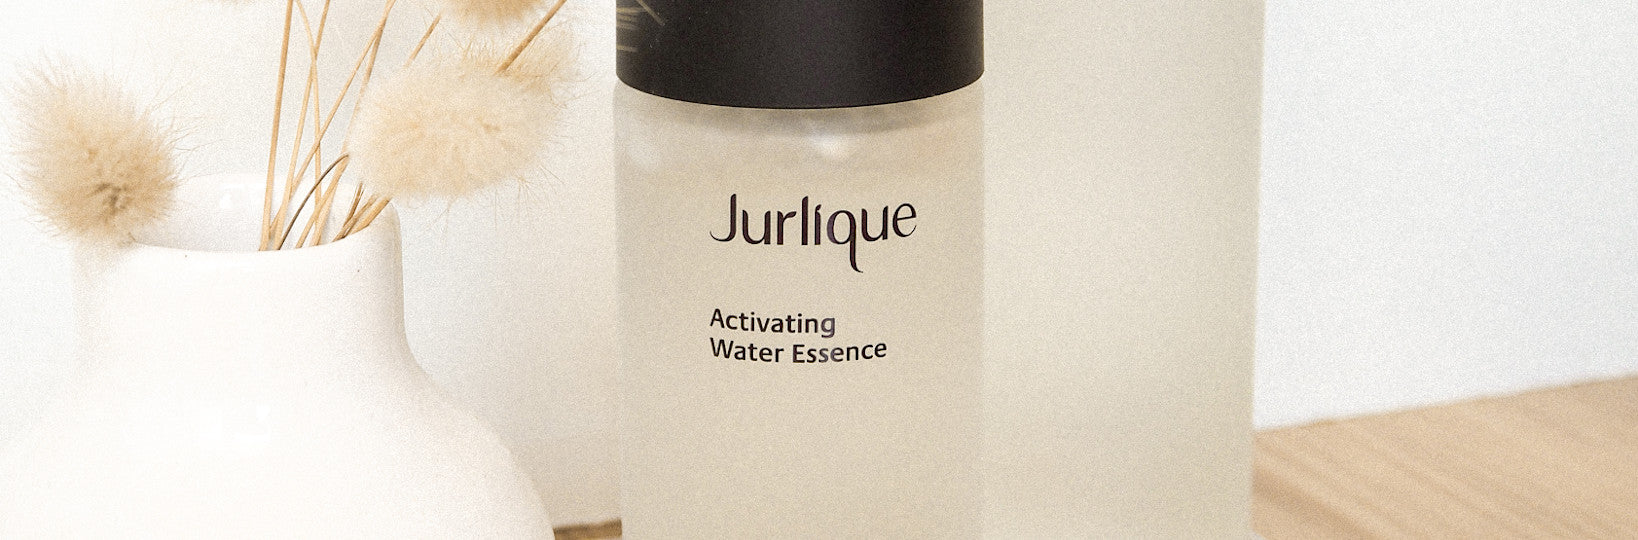 Bottle of Jurlique Activating Water Essence next to plant in a white vase